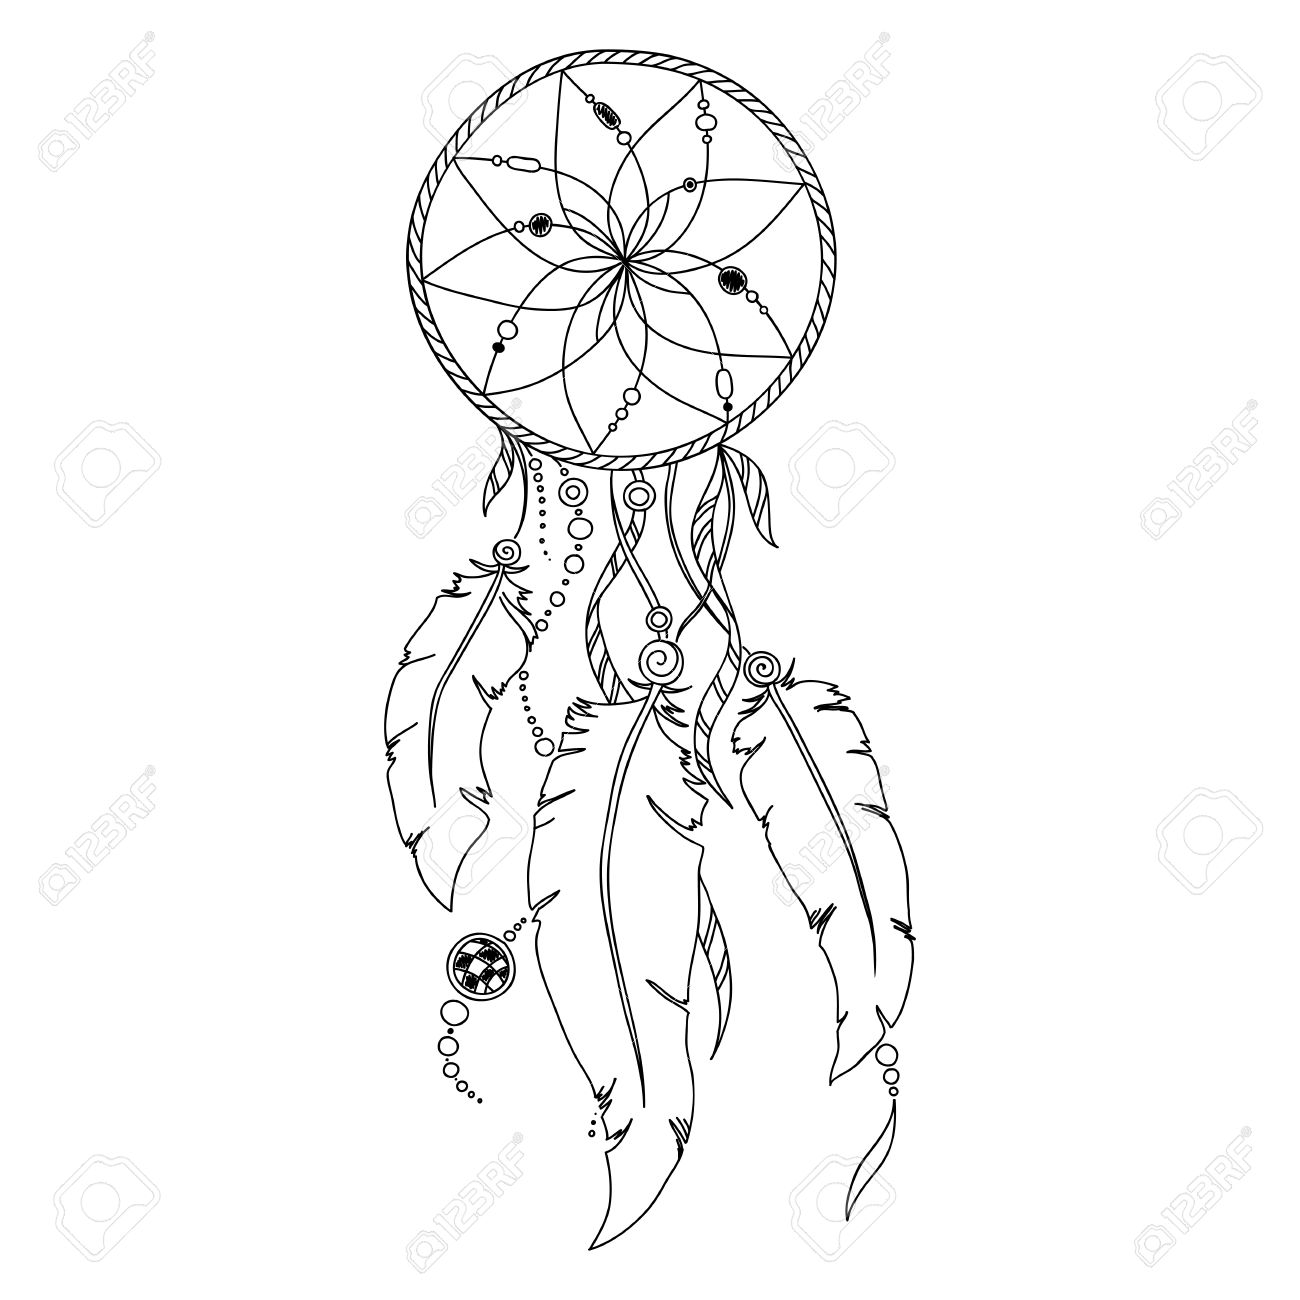 Coloring pages of mehndi hand pattern - Pattern For Coloring Book Coloring Book Pages For Kids And Adults Indian Dream Catcher